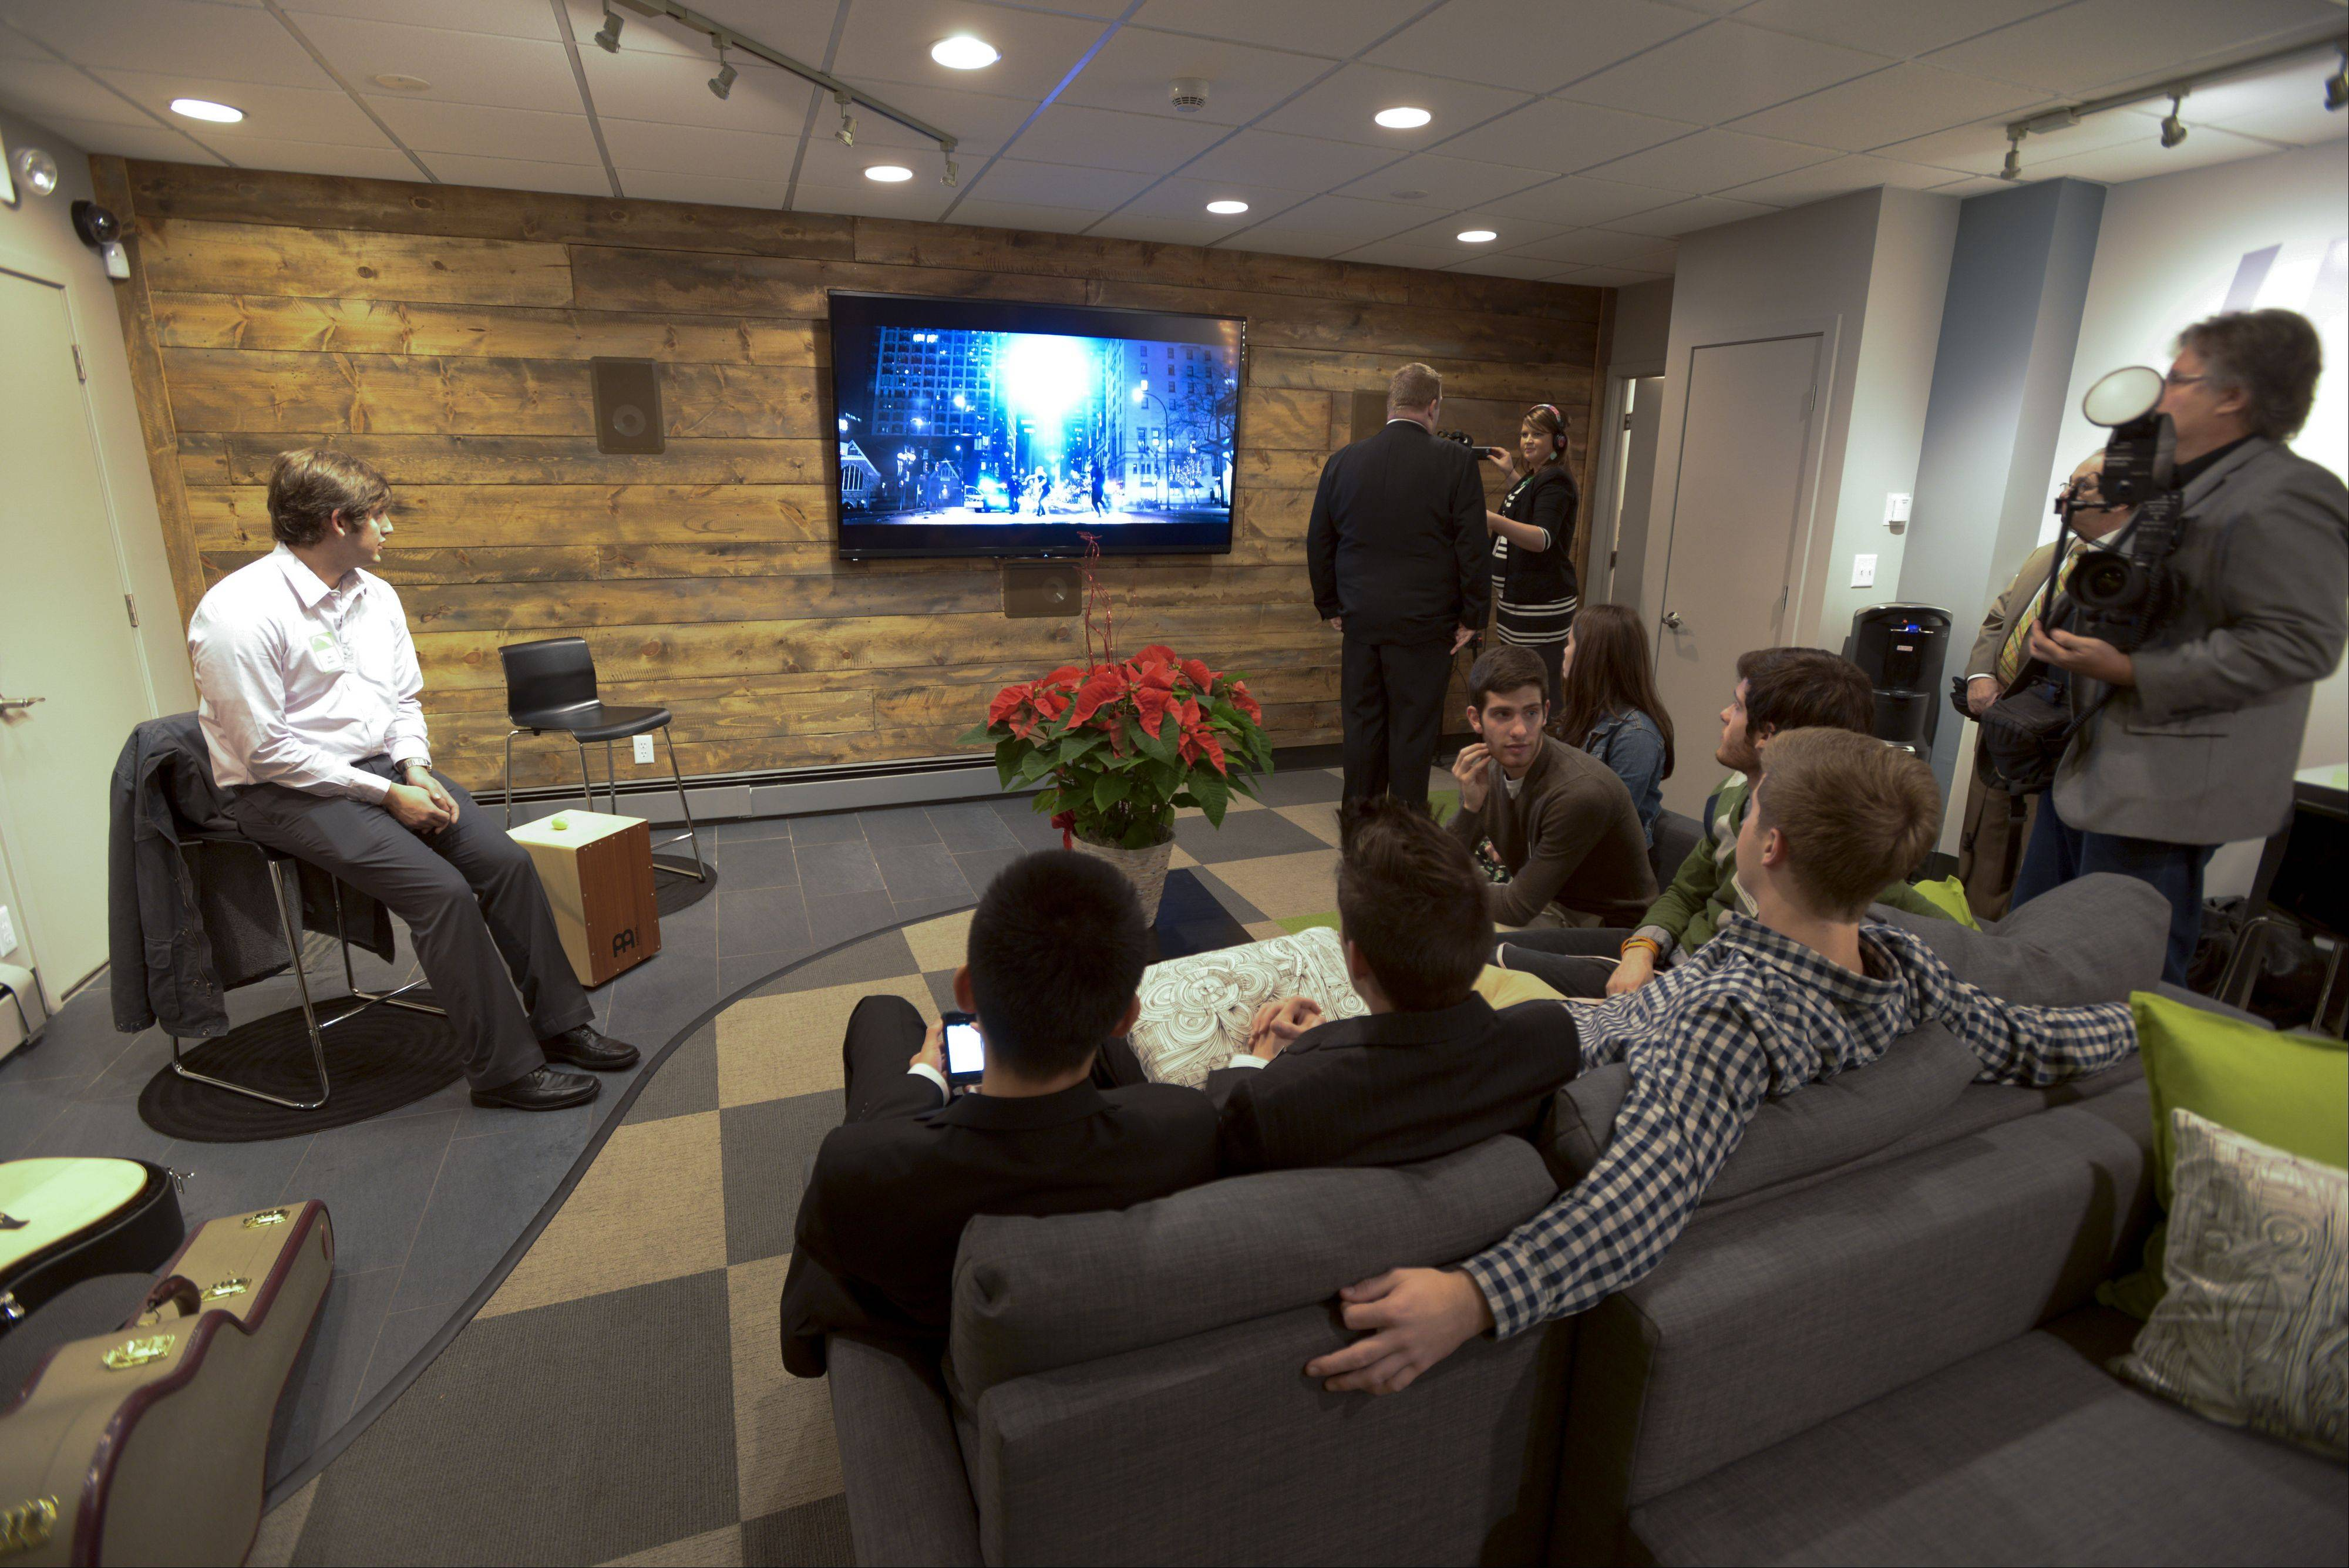 The new NaperBridge teen center in downtown Naperville includes amenities such as a huge flat screen TV, several seating areas and an area for local bands to preform.